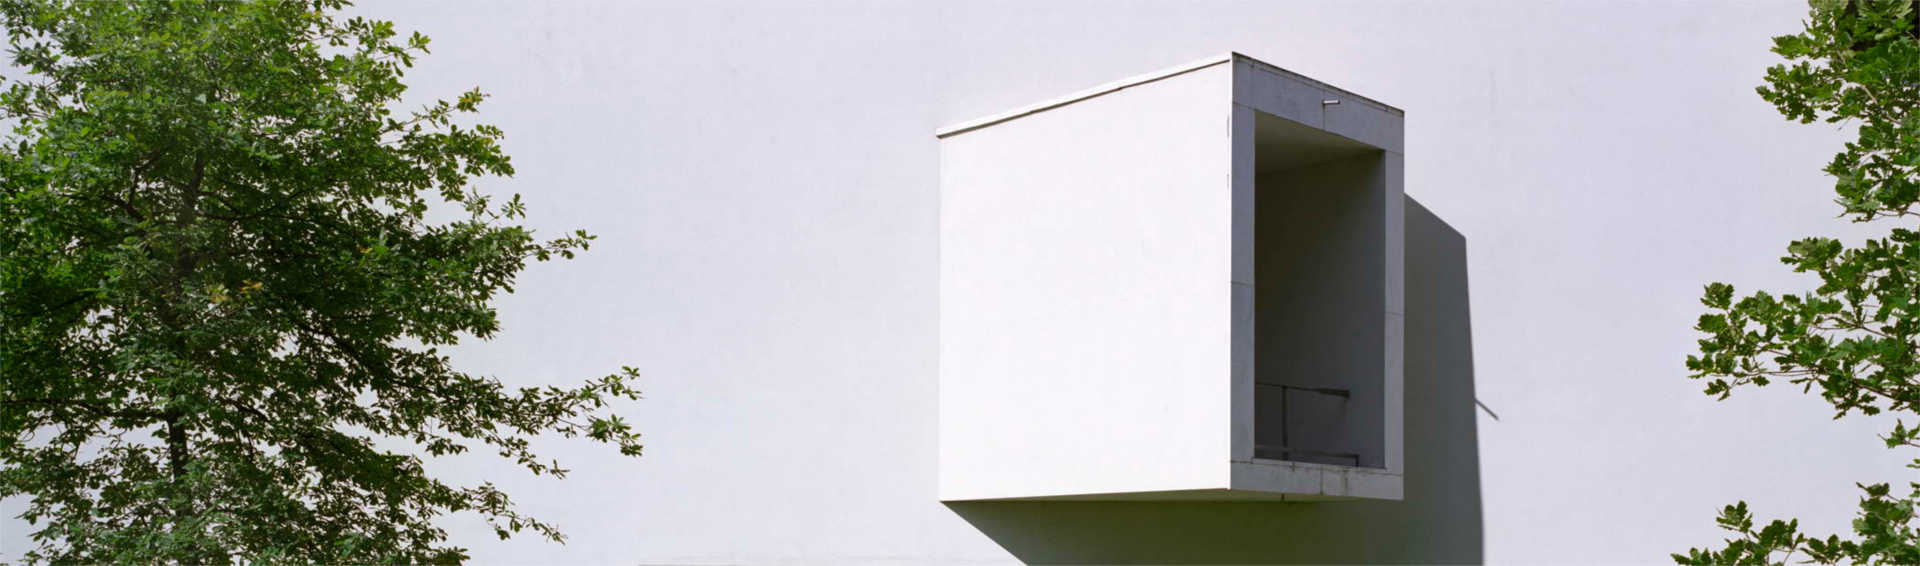 Serralves Foundation - image 2